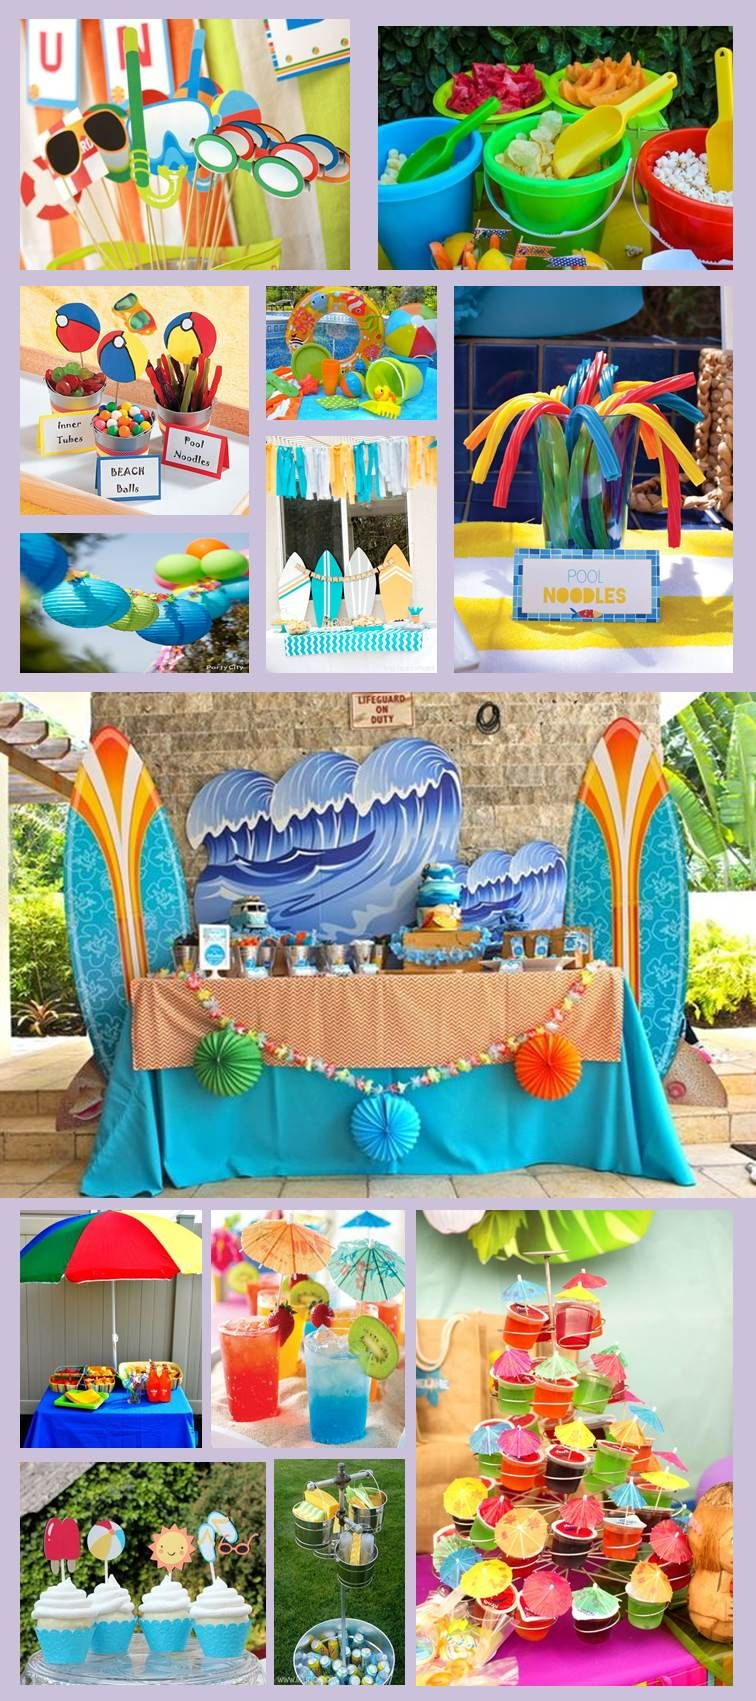 Inspiraci n para candy bar pool party inspiraci n desde - Ideas para cumpleanos en piscina ...